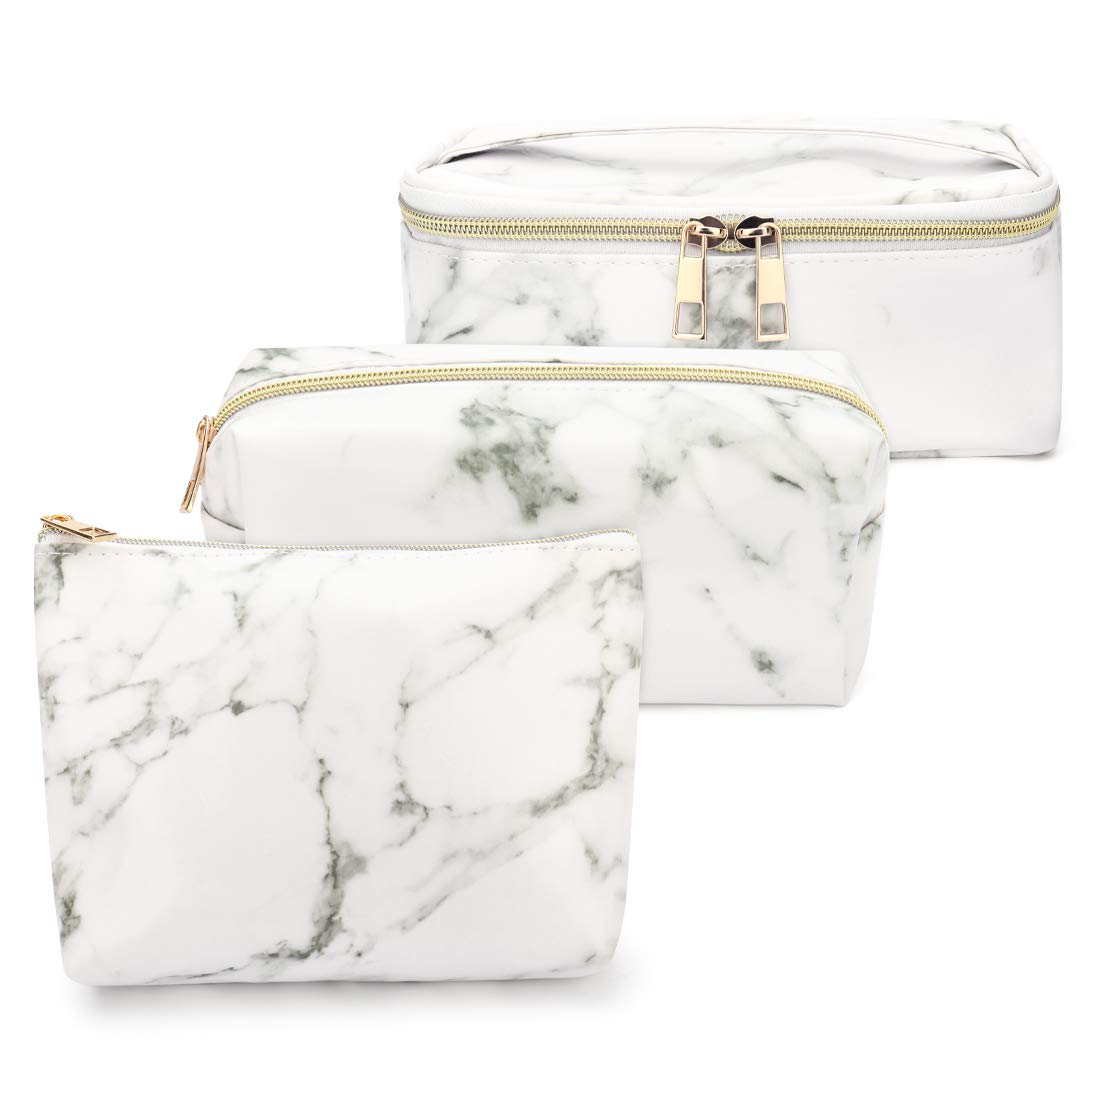 Lionvison 3Pcs Marble Makeup Bag Set - Multifunction Large Cosmetic Travel Bag, Moderate Toiletry Bag and Portable Cute Tiny Brush Storage Pouch for Women and Girls